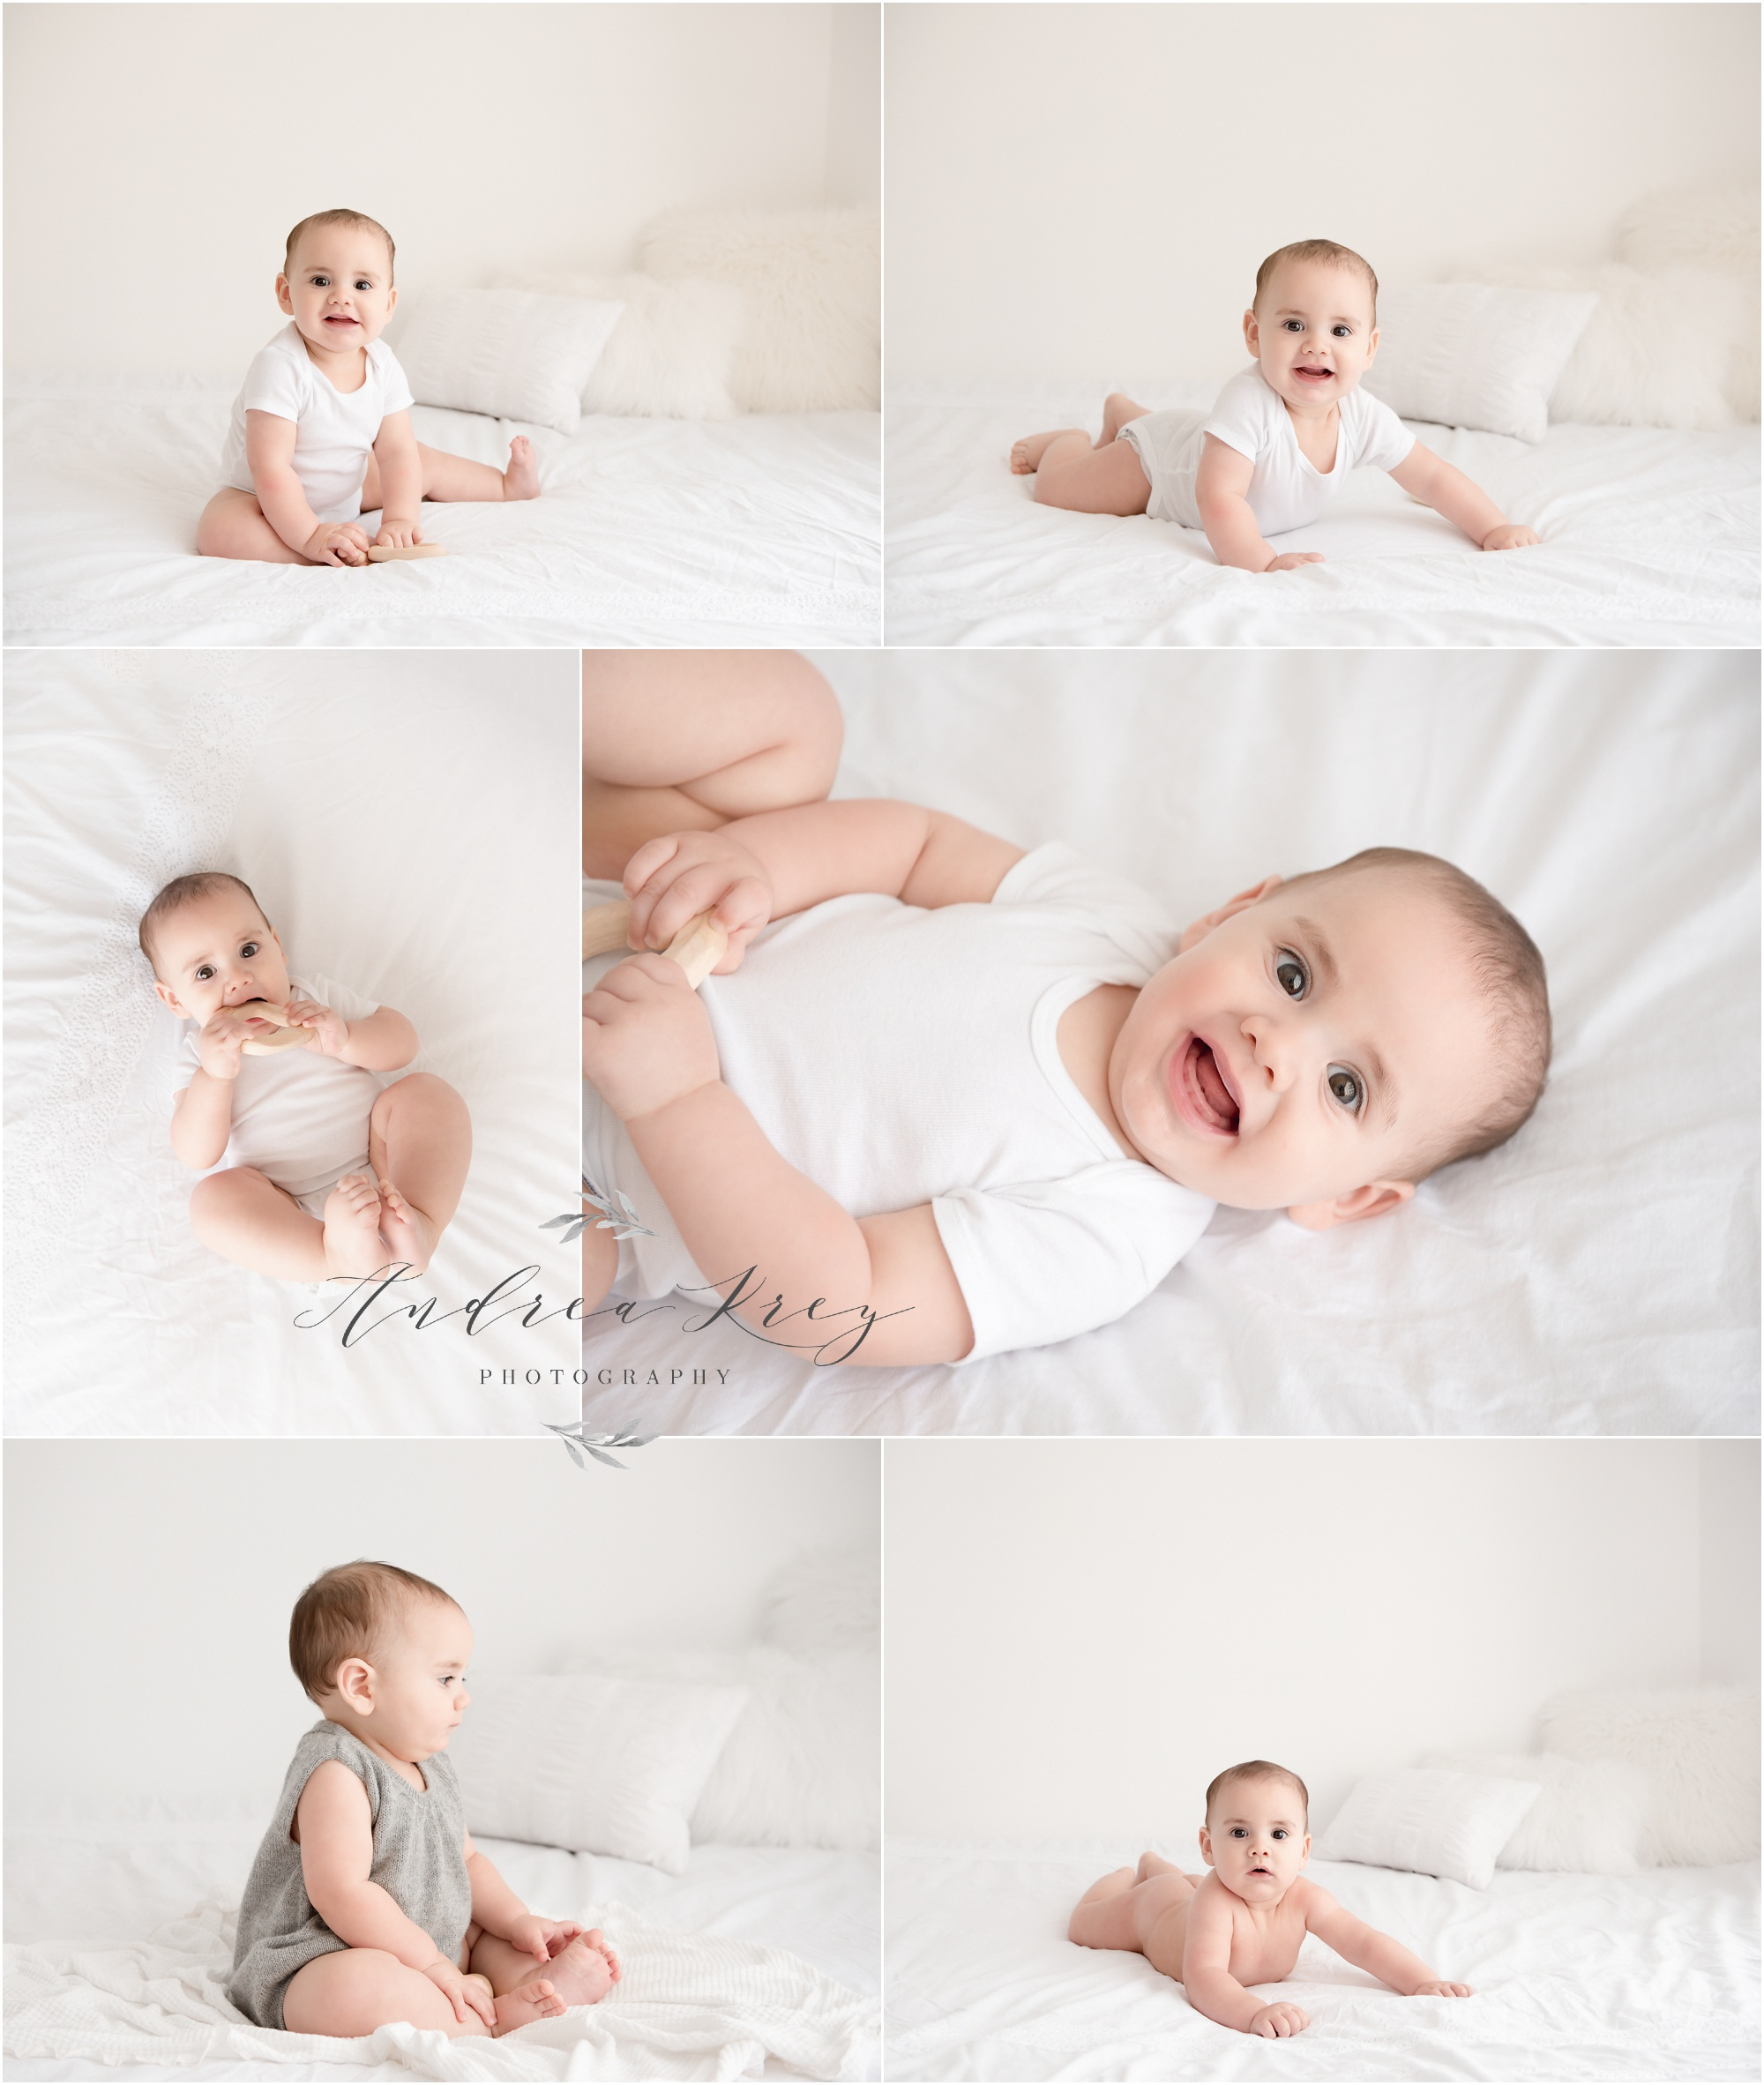 2019-04-01_0001.jpgbaby-photographer-savannah-hinesville-pooler-georgia